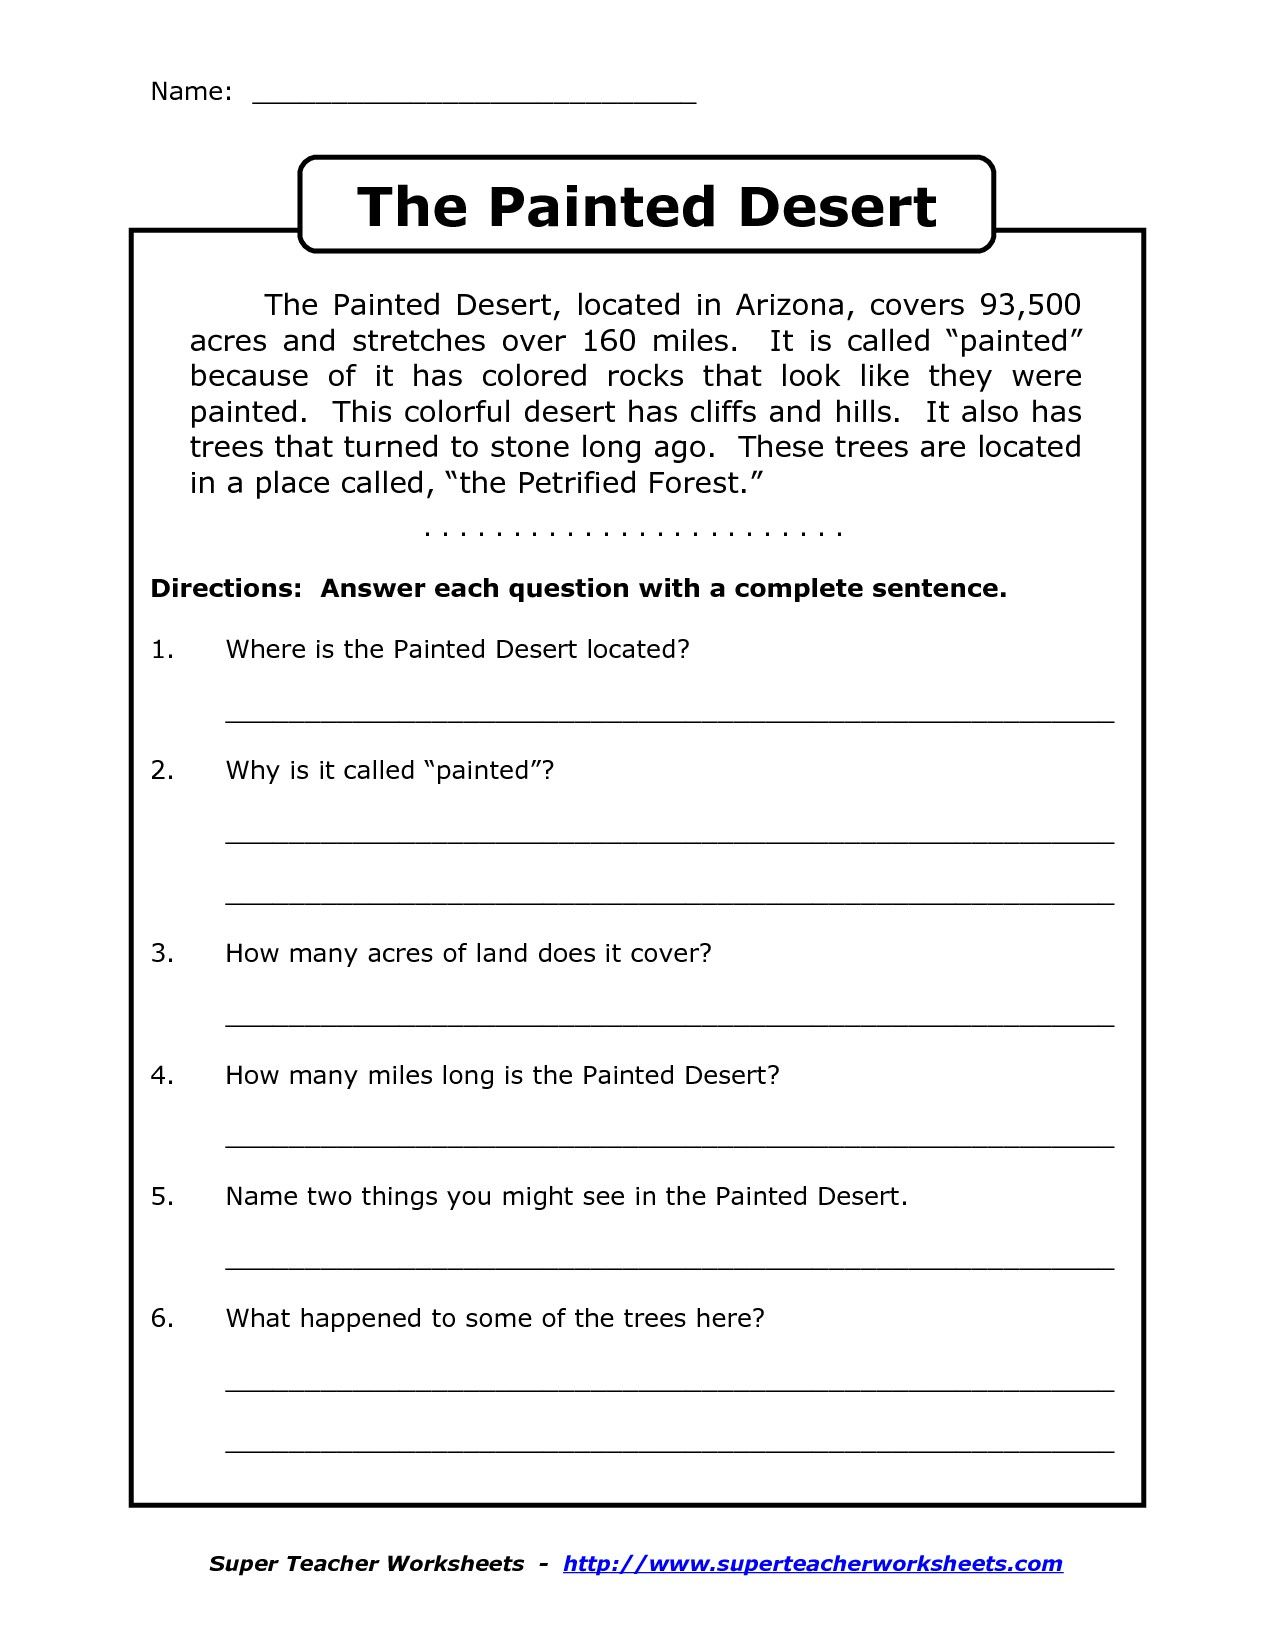 Worksheet Reading Comprehension Printable Worksheets grade 2 reading comprehension worksheets free coffemix worksheet coffemix